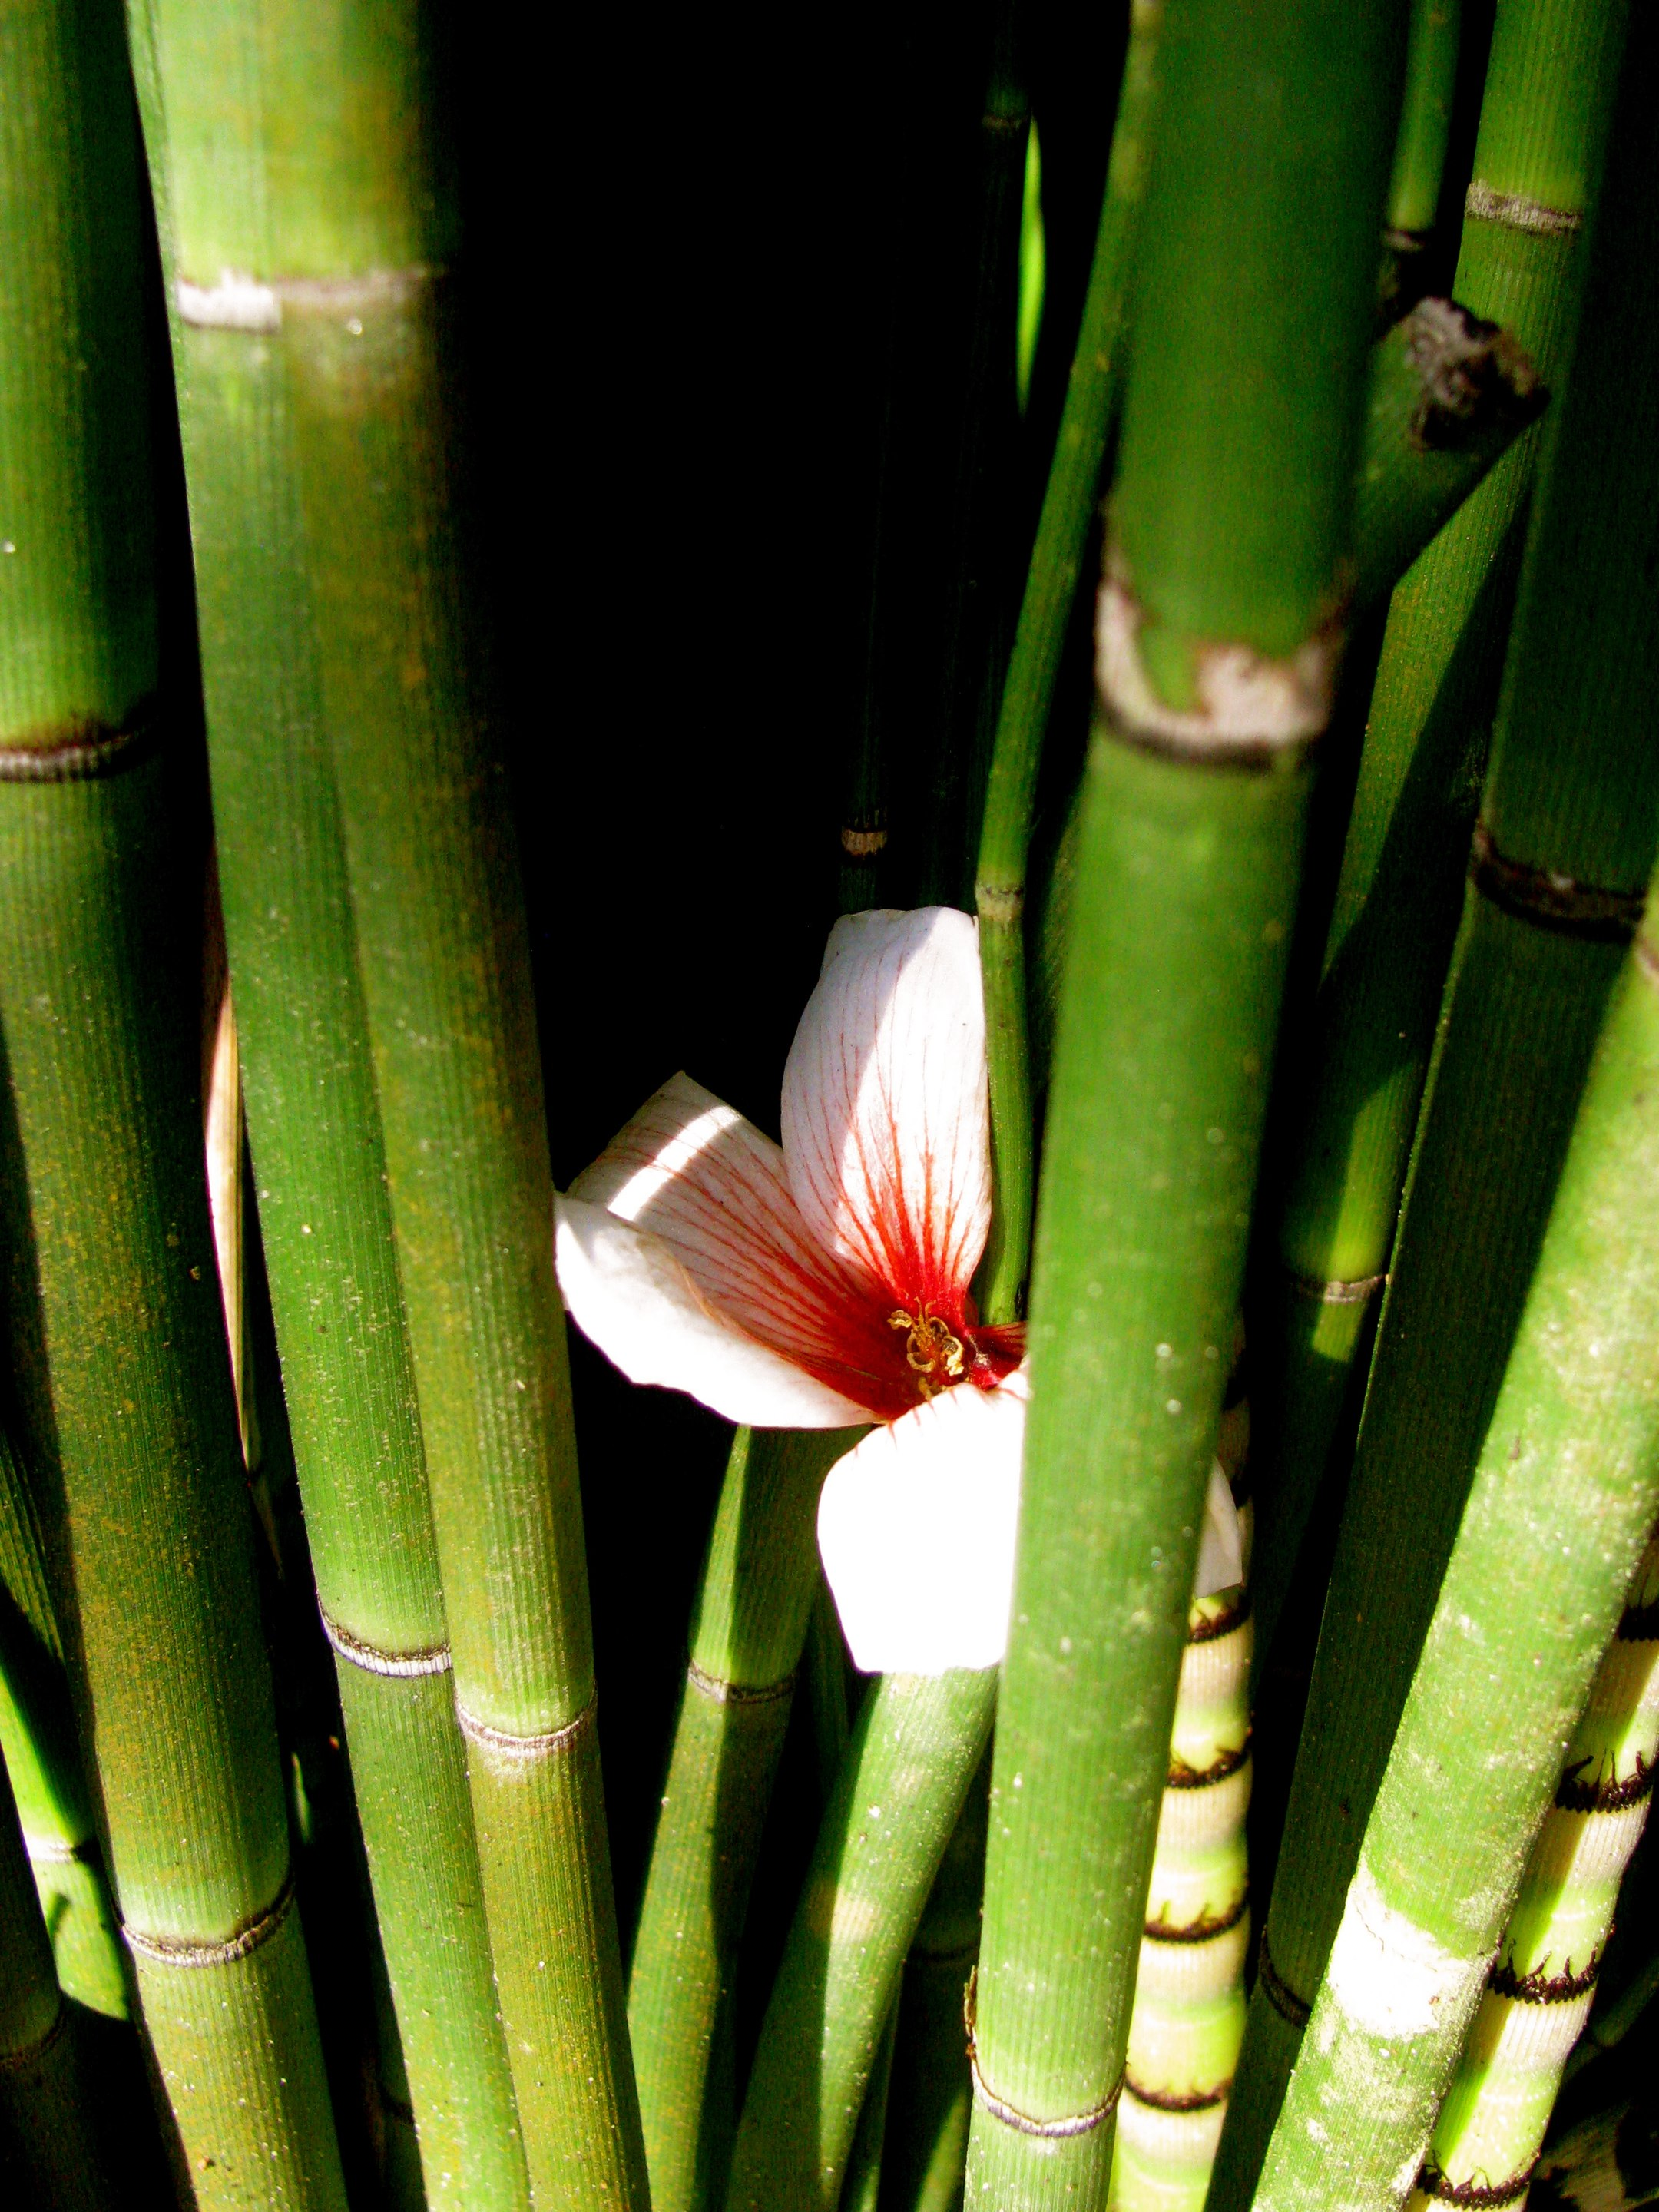 Flower in the bamboo